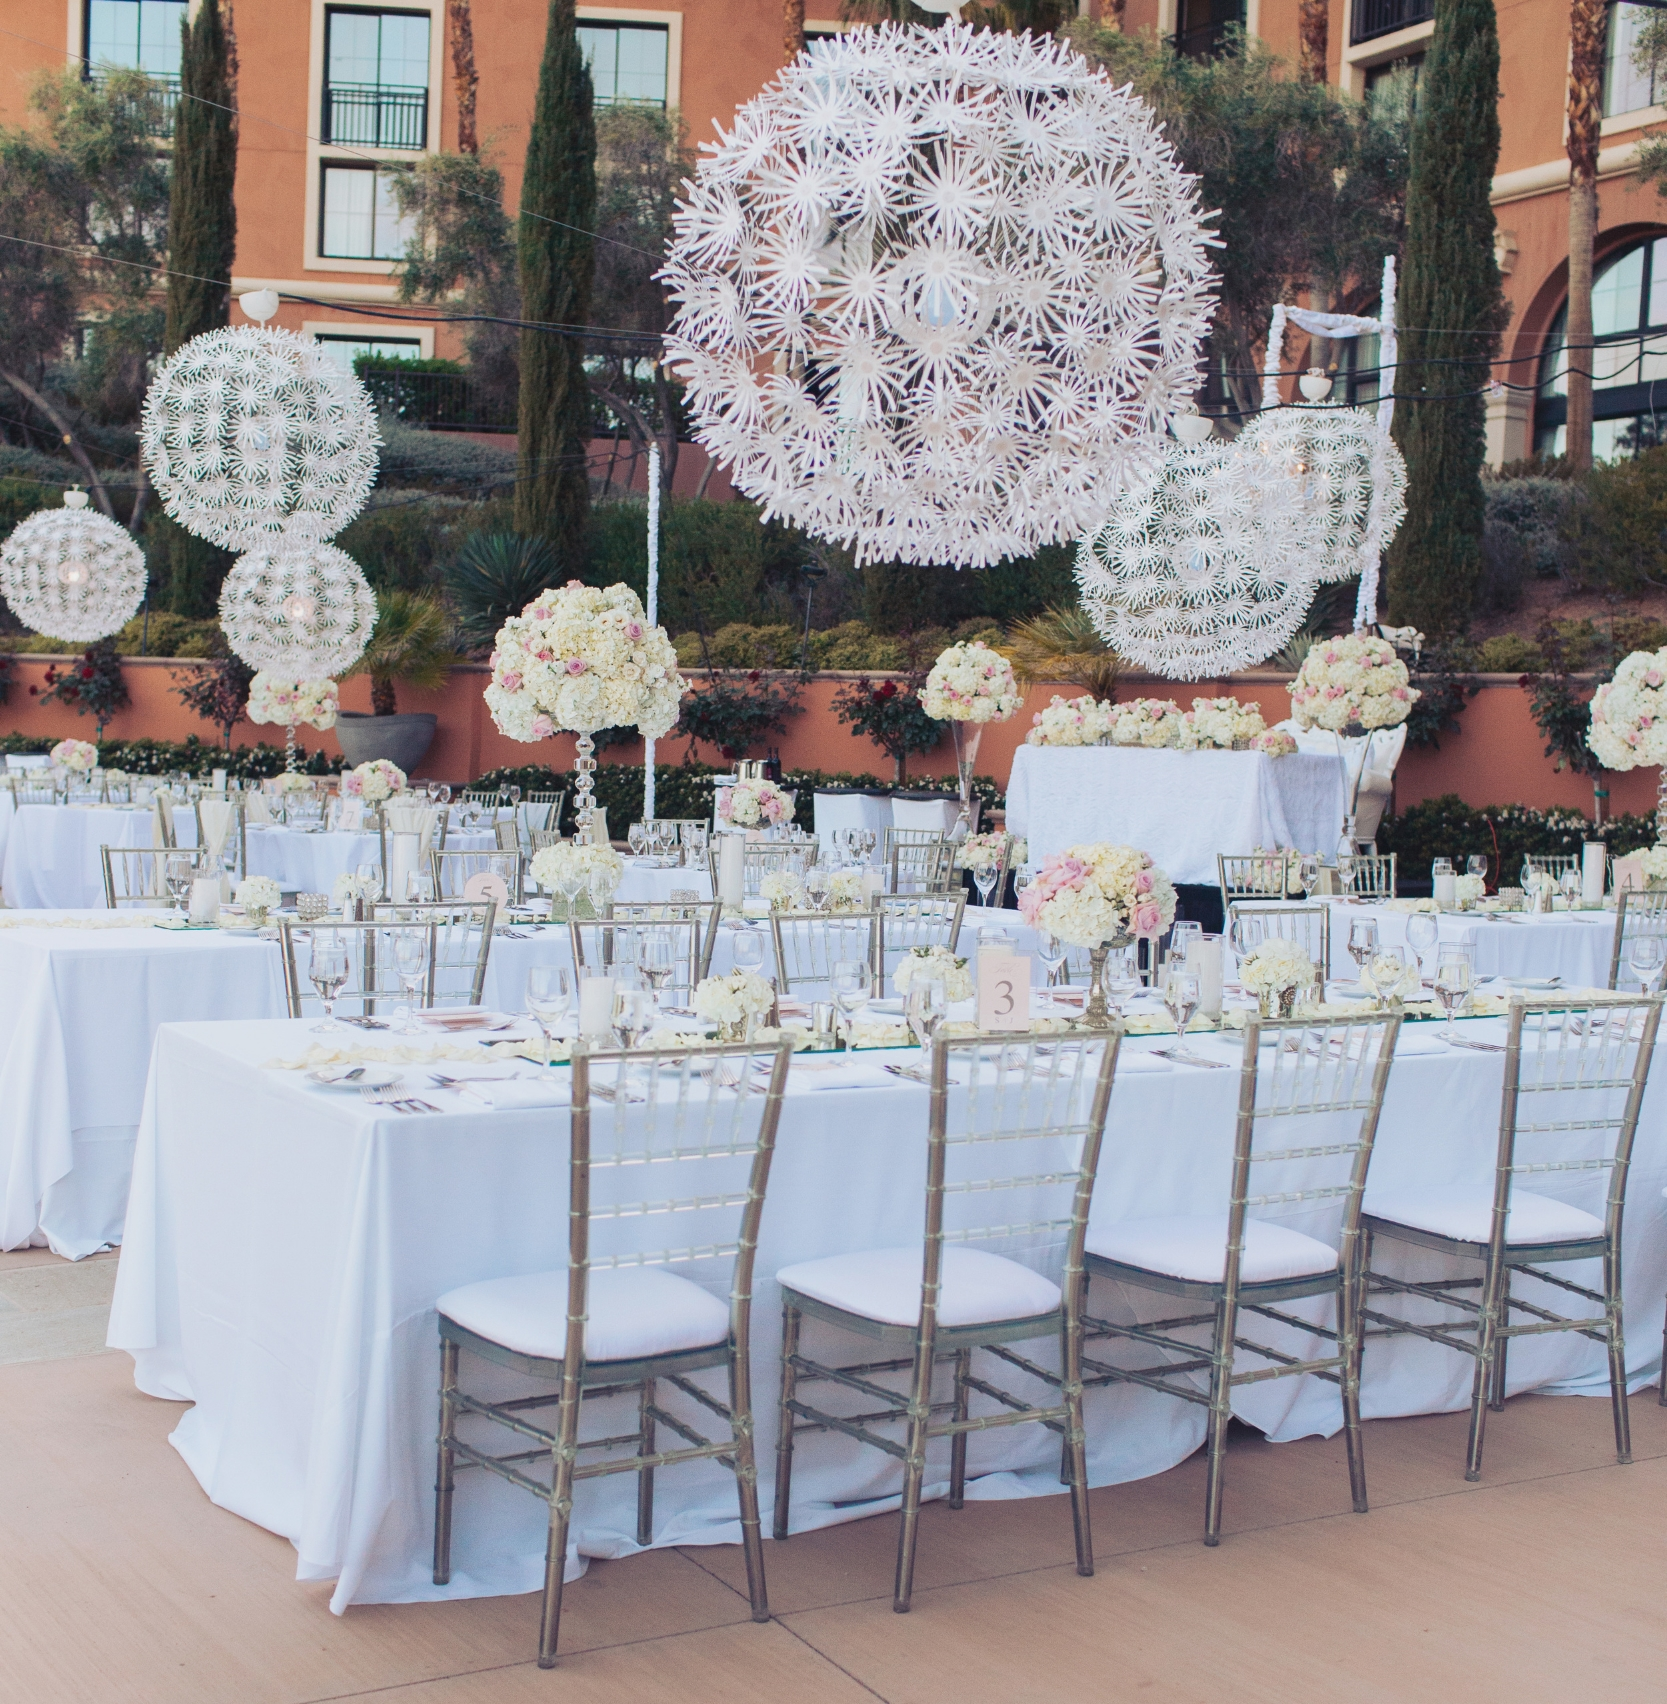 Las Vegas Luxury Wedding Planner Andrea Eppolito is featured on The Knot.